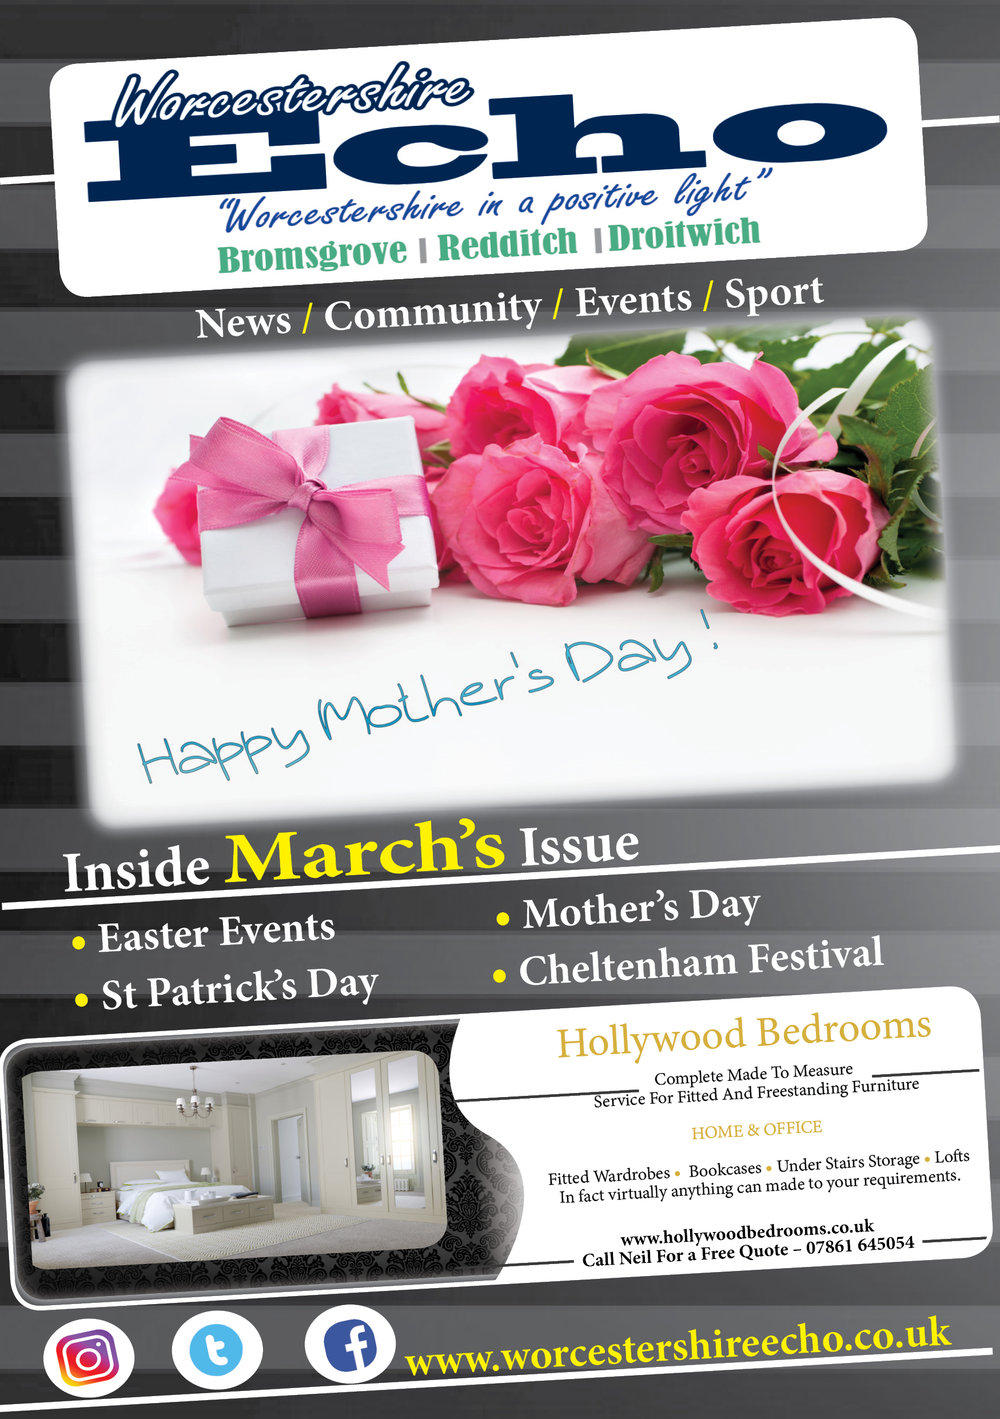 March Bromsgrove front page.jpg